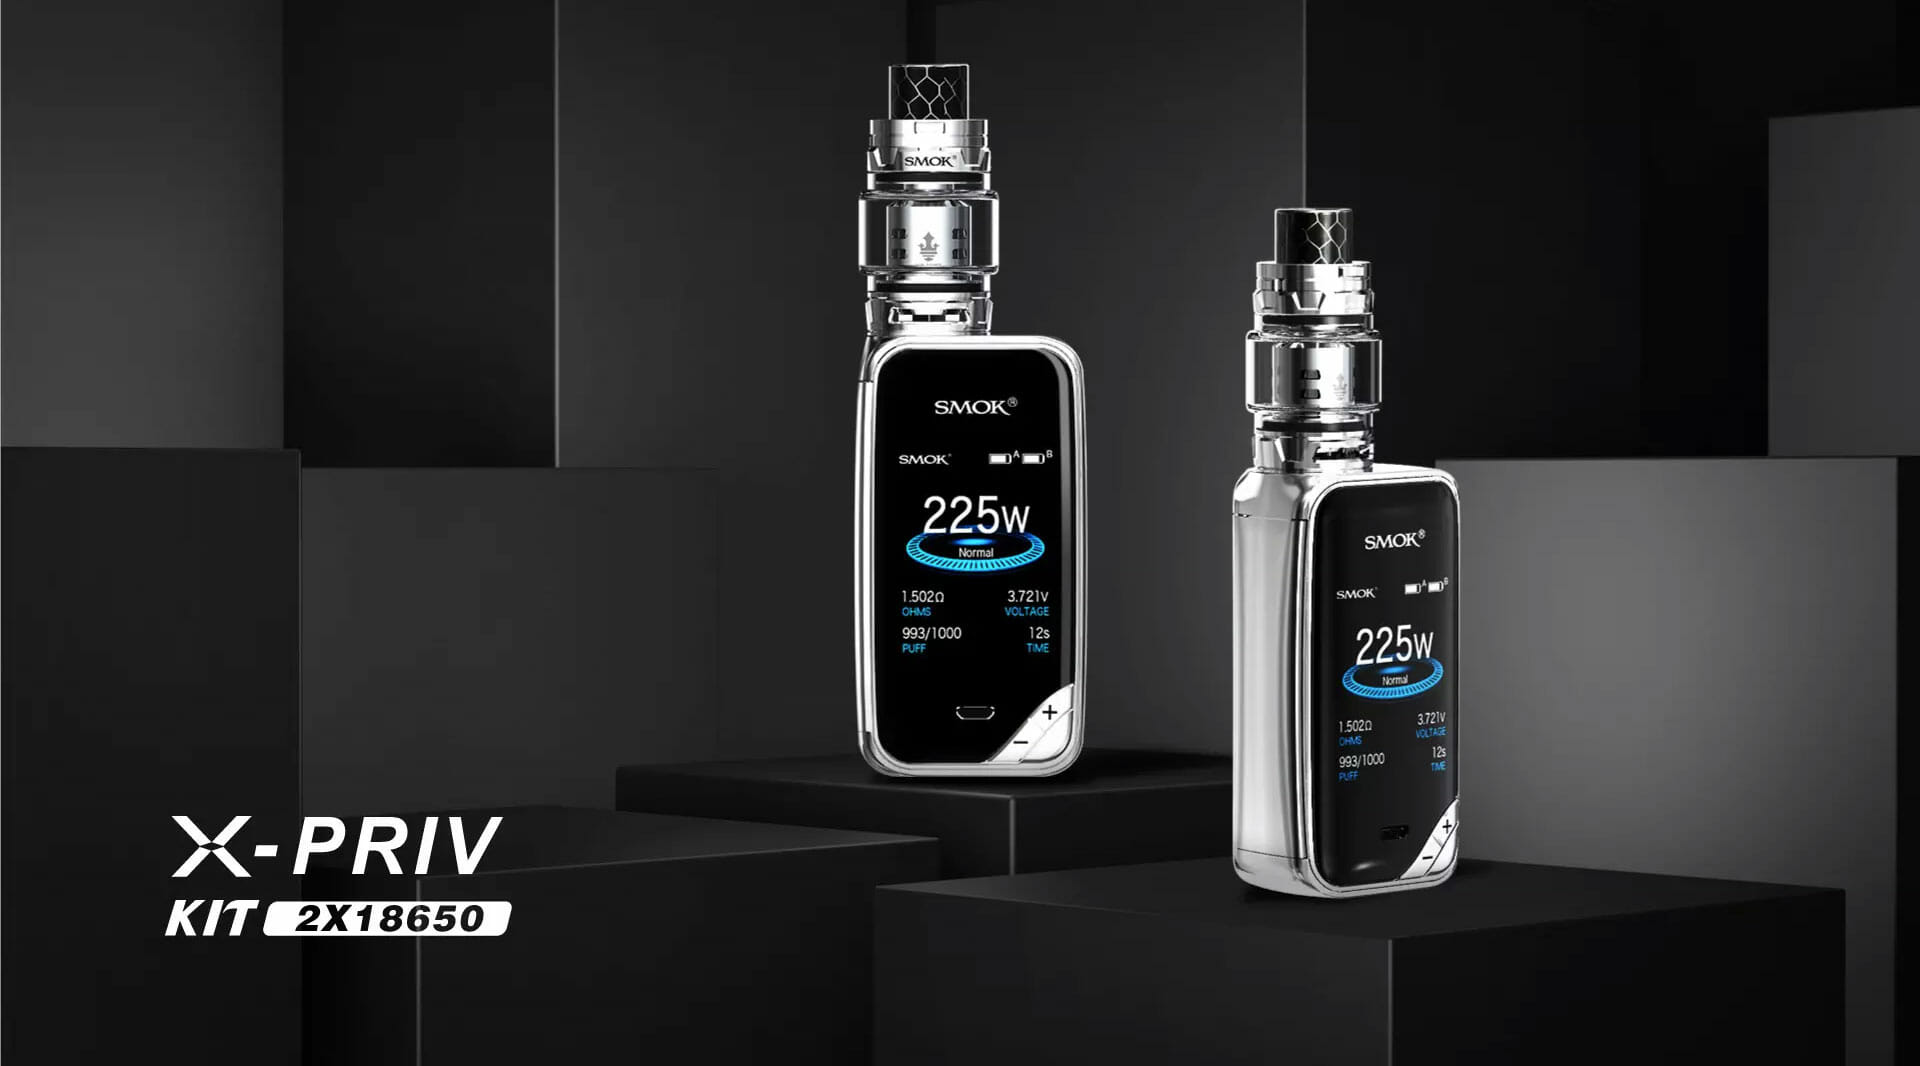 smok-x-priv-kit-product-page8